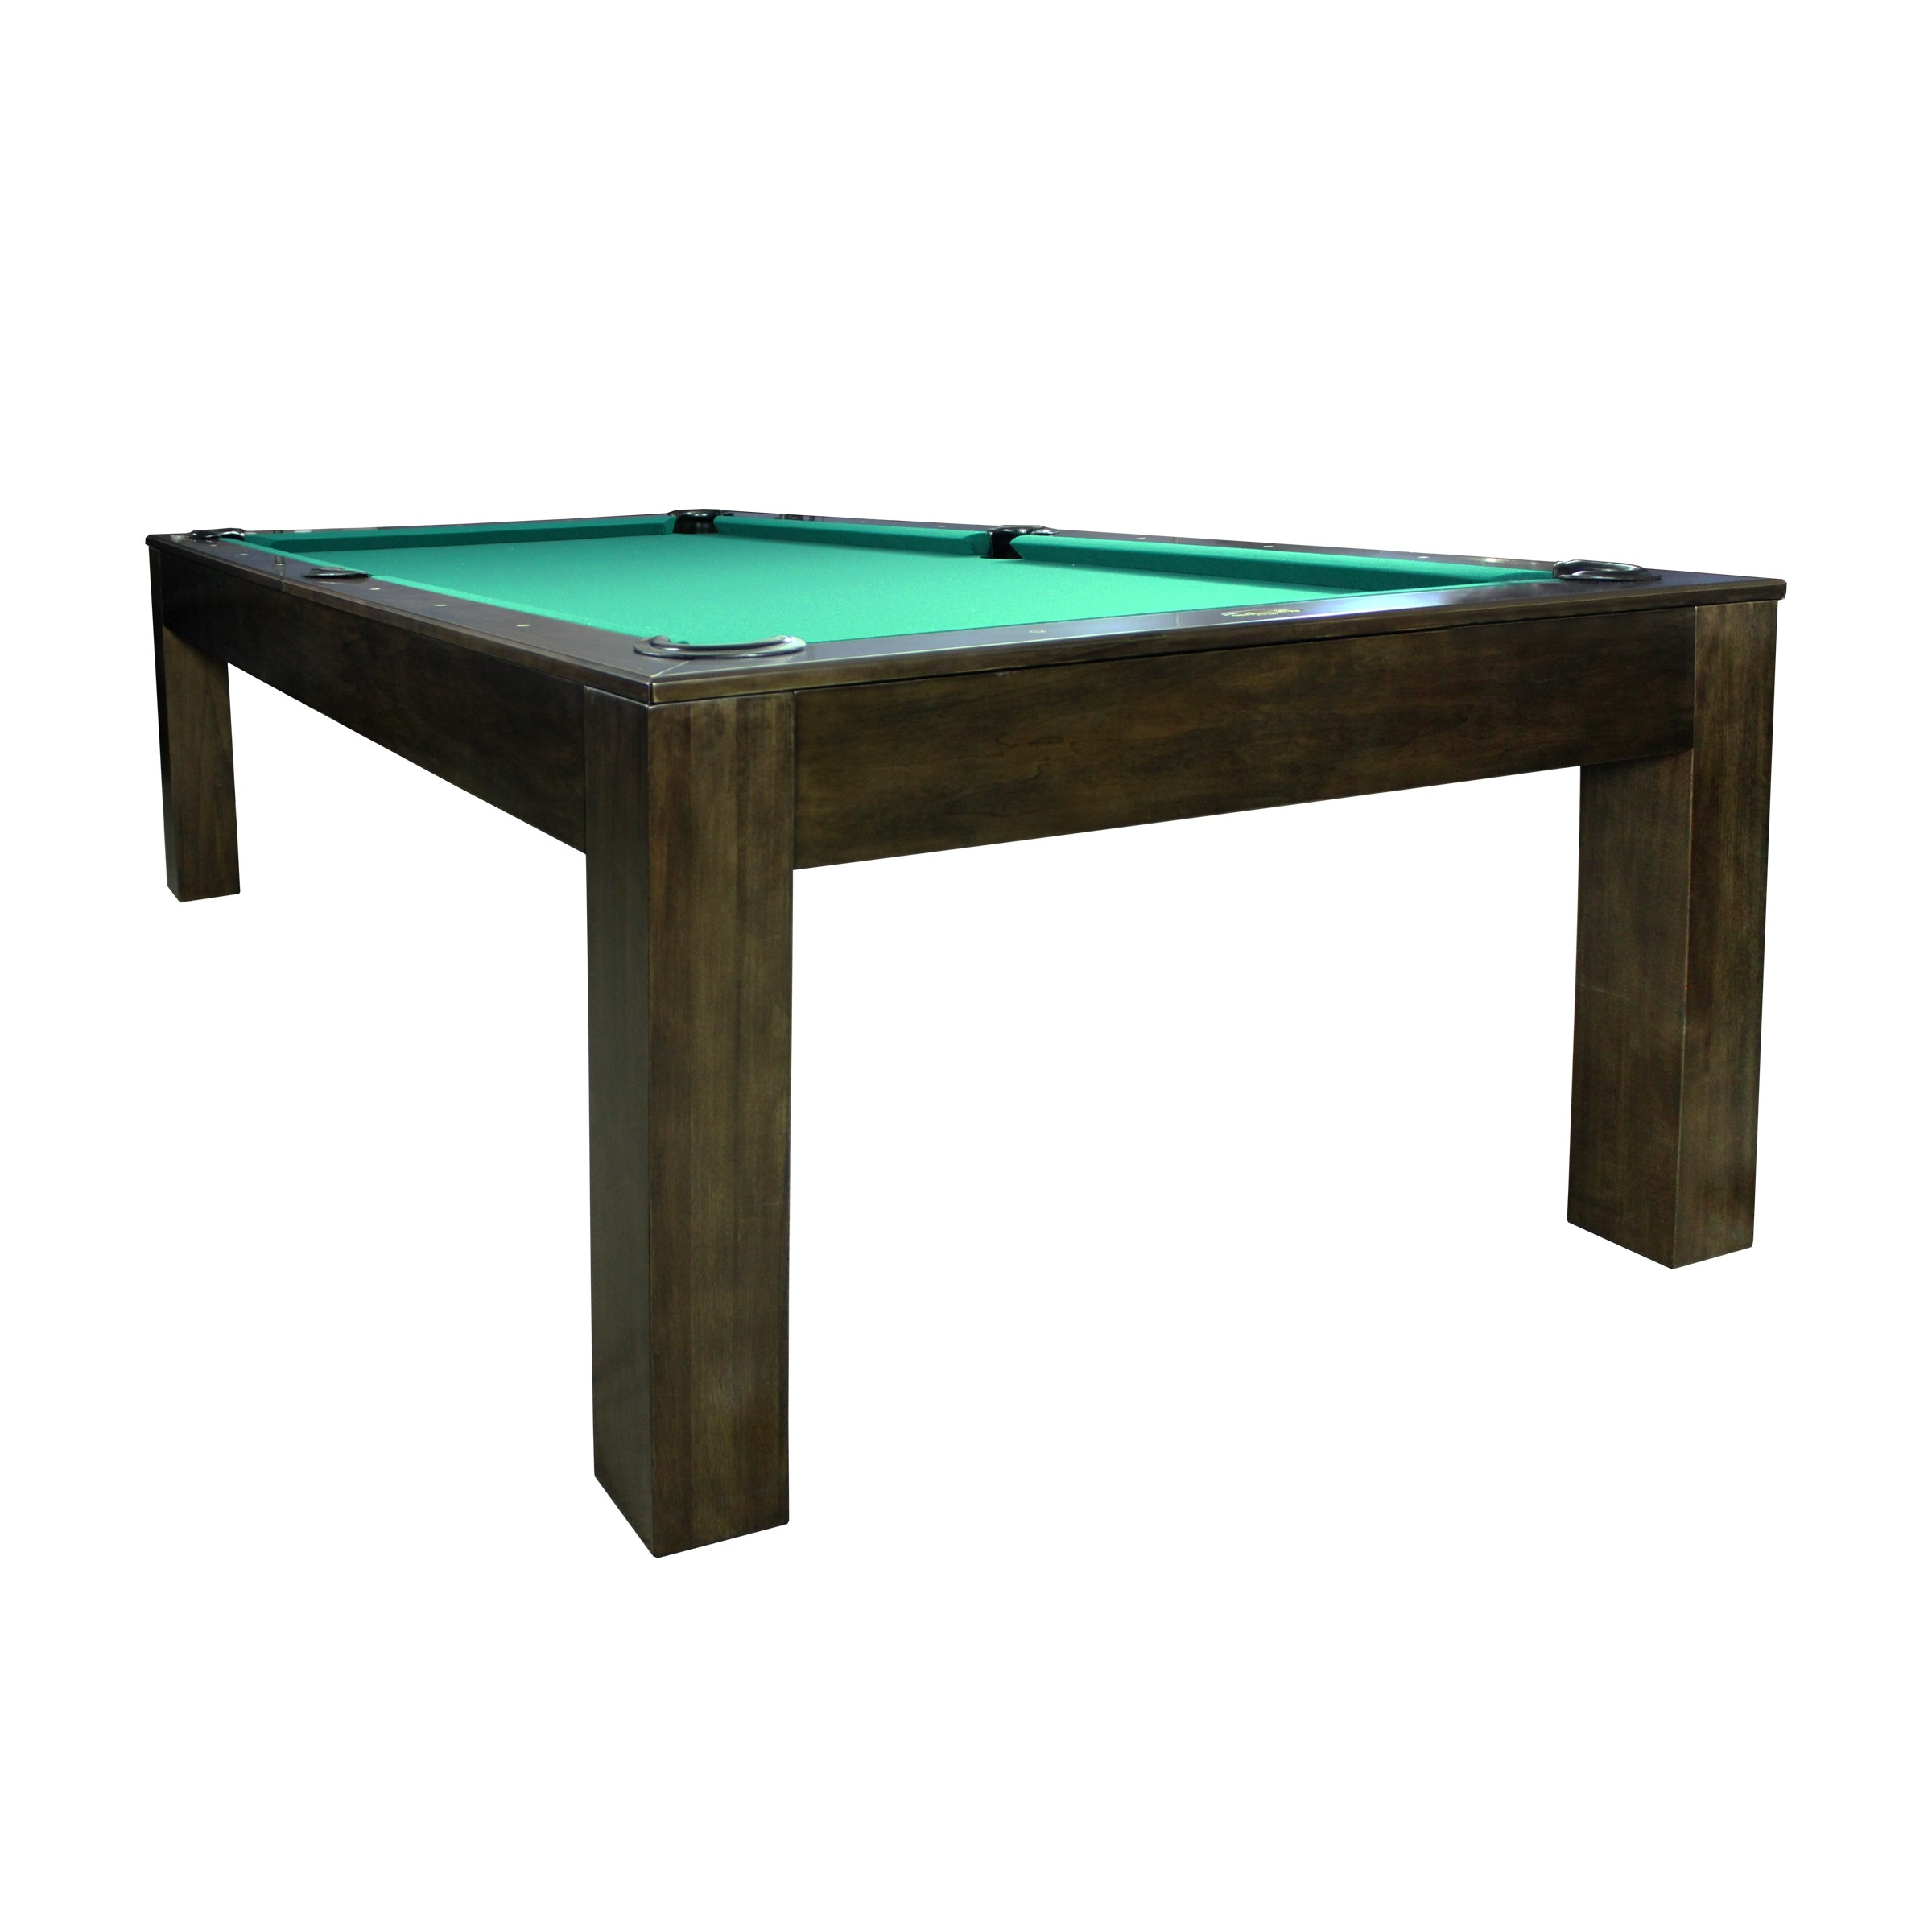 they stain service pool can img table black billiard their customers converted simple nash with be our beautiful archives thing a supply california foot chose formal orange tag